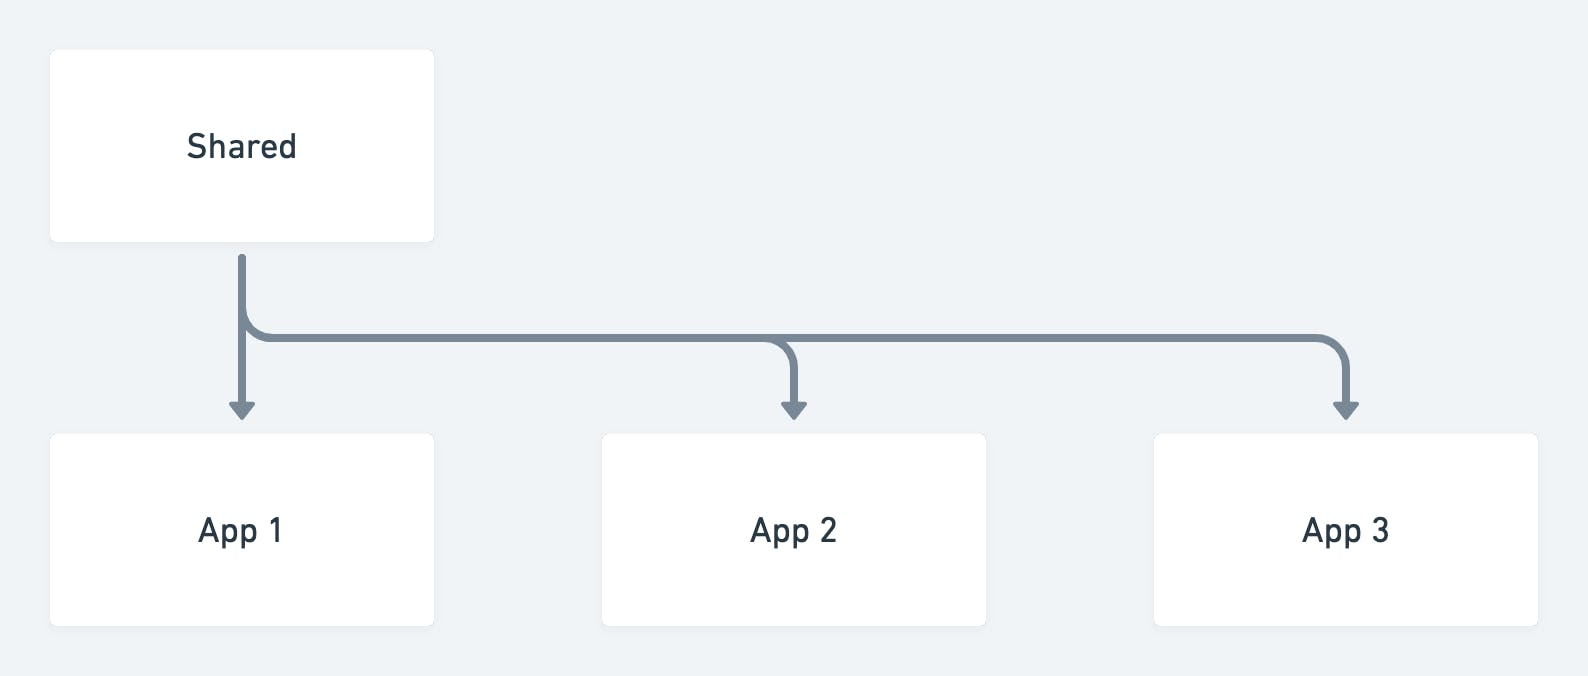 Applications dependency on shared library